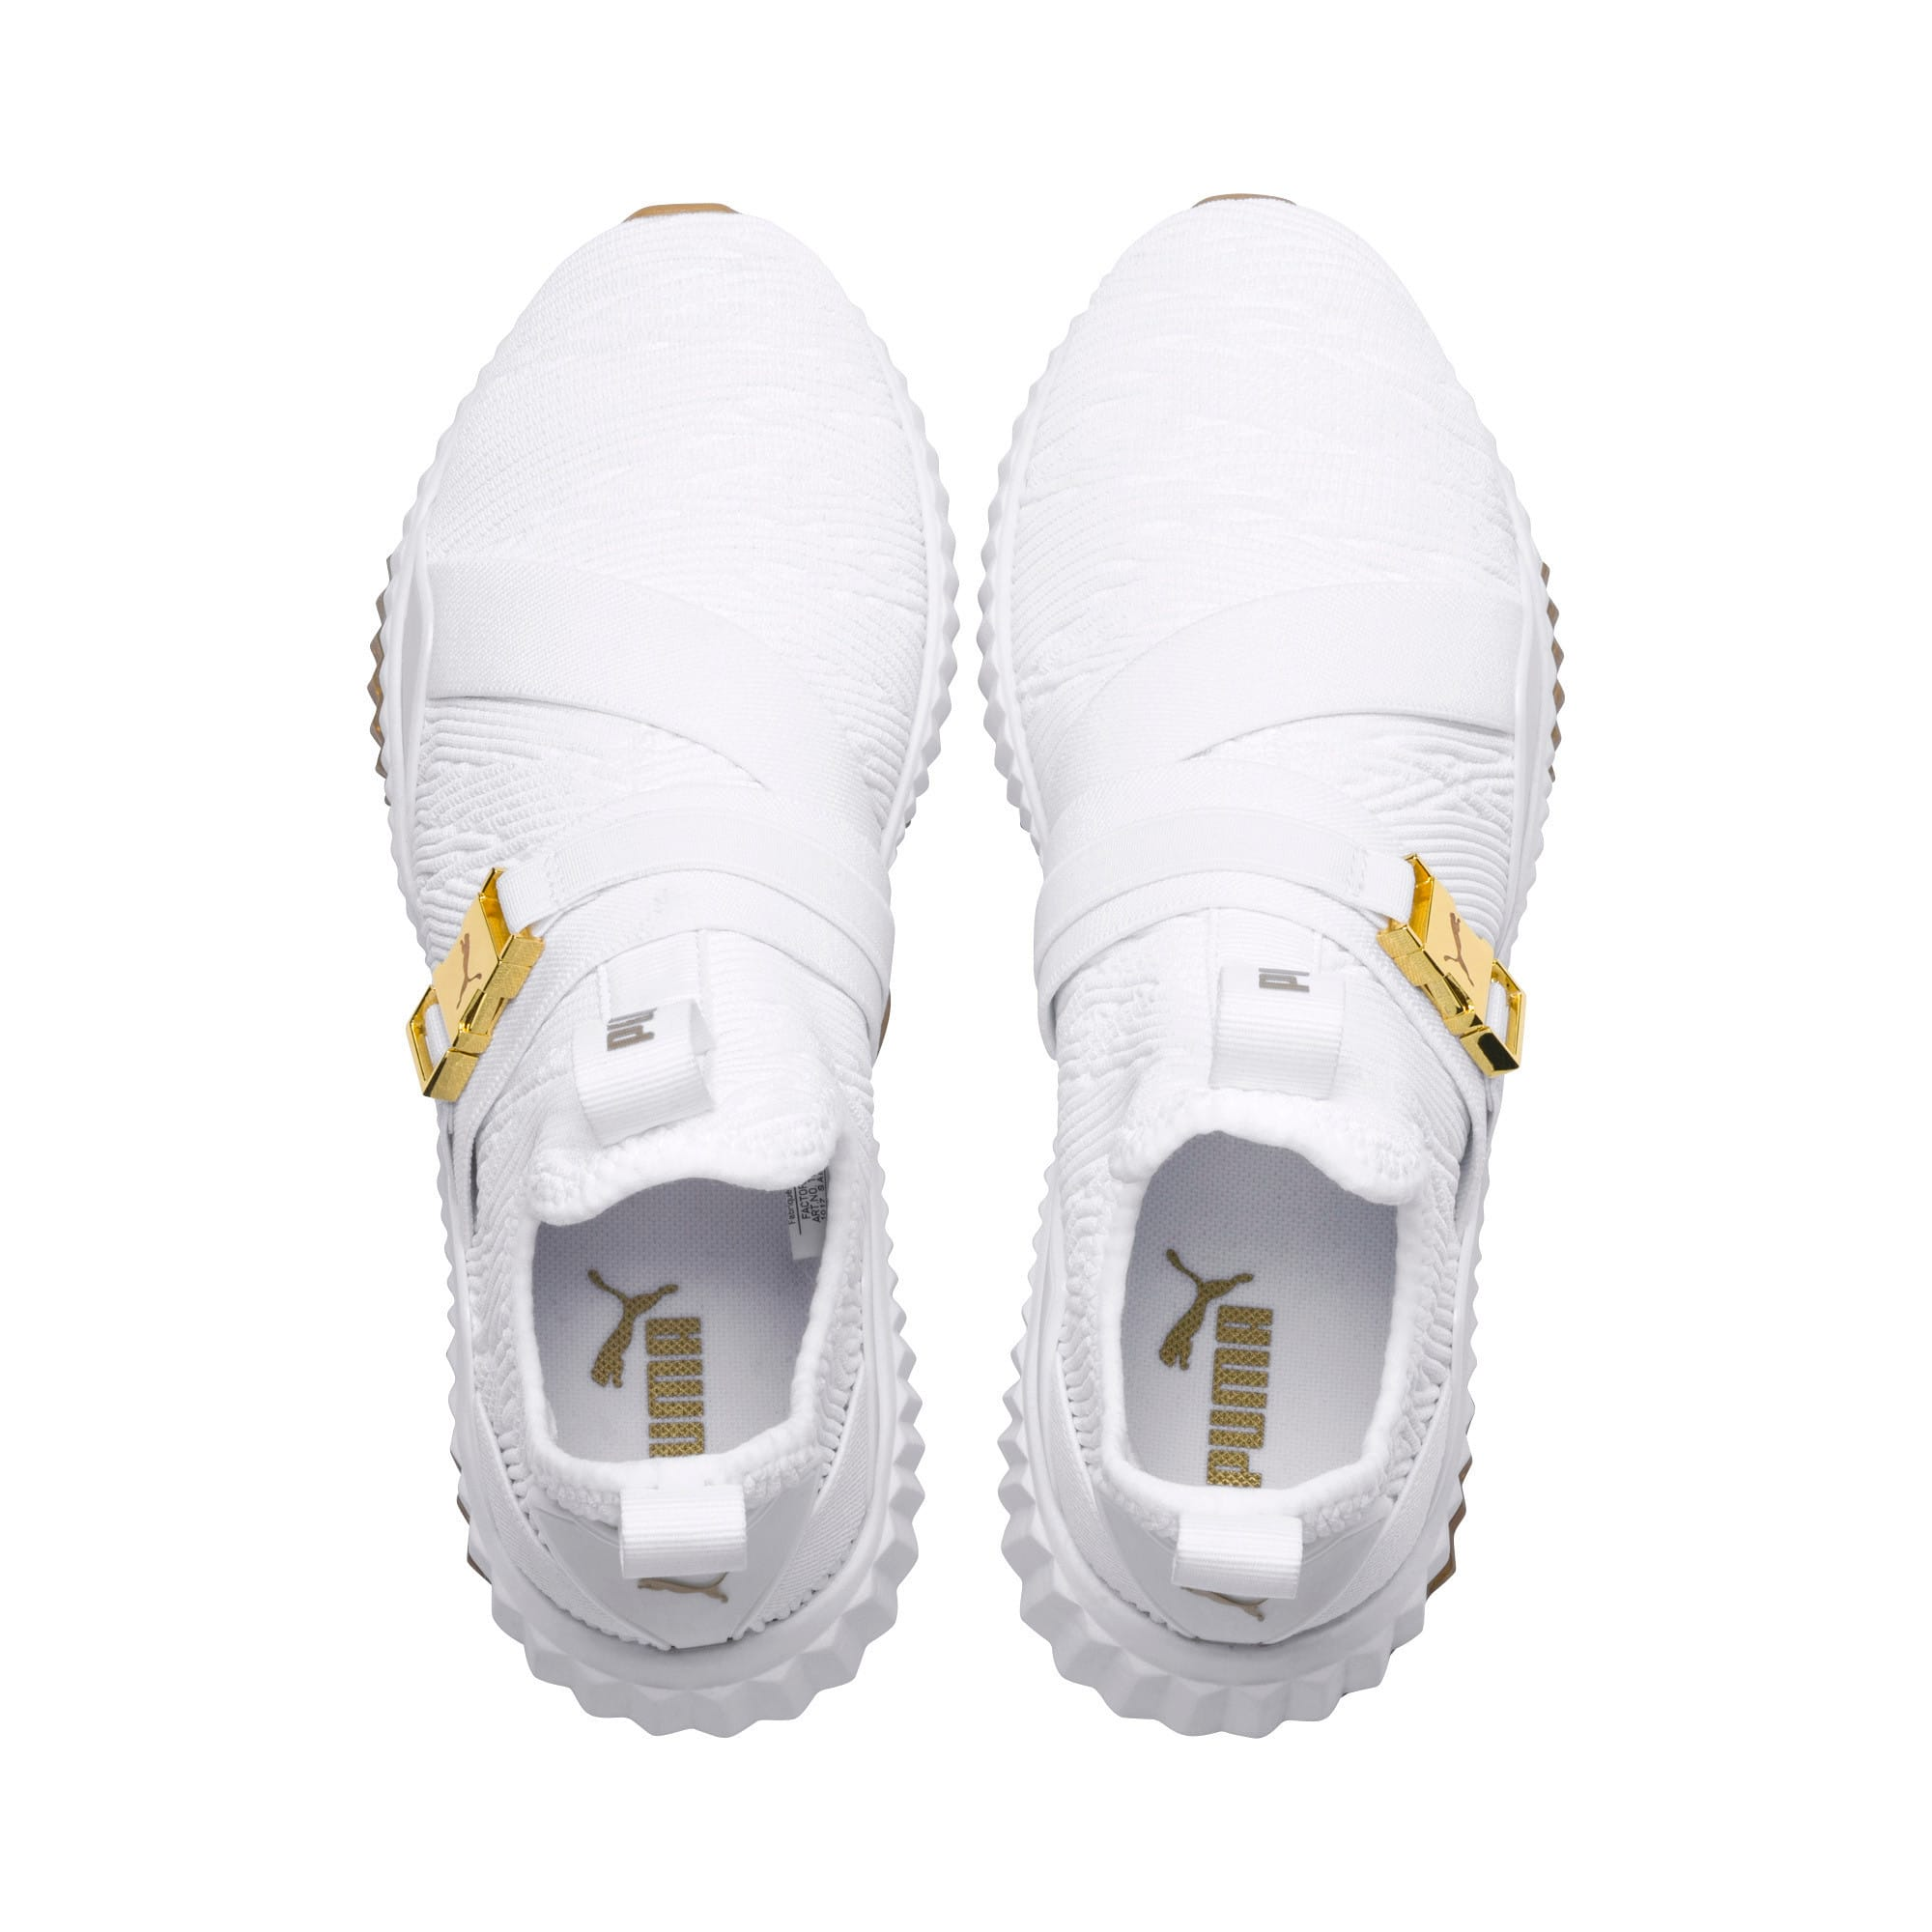 Thumbnail 4 of Defy Varsity Mid Women's Trainers, Puma White-Metallic Gold, medium-IND